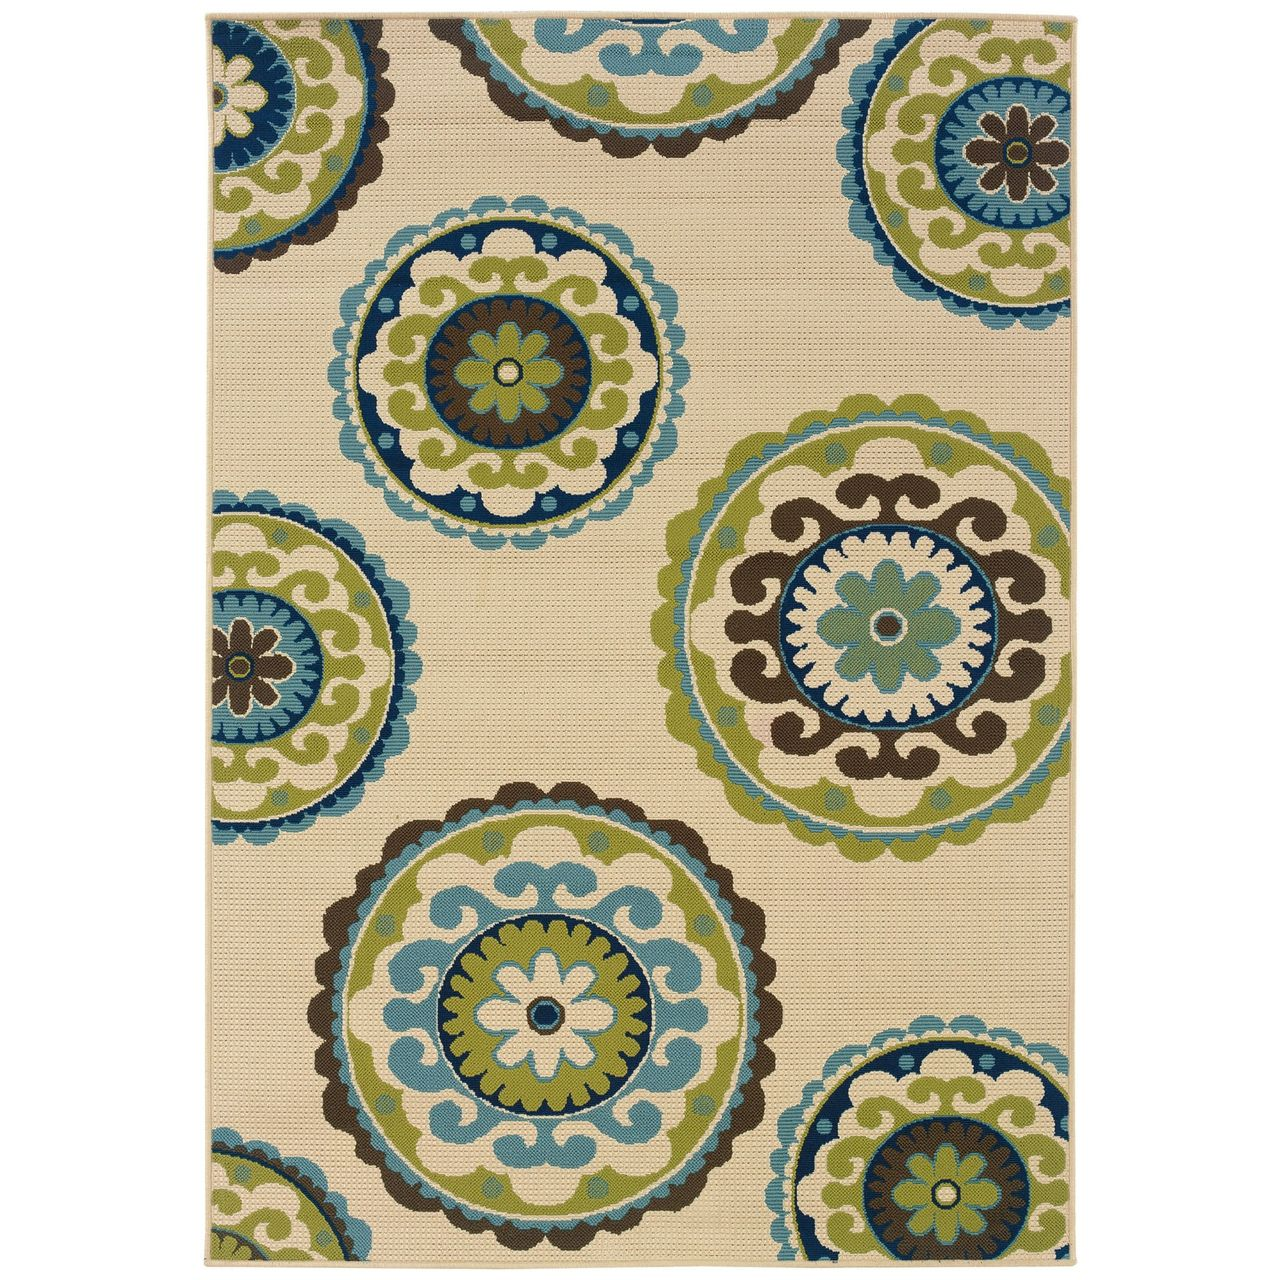 3 7 X 5 6 Outdoor Indoor Area Rug In Ivory Green Blue Brown Circles